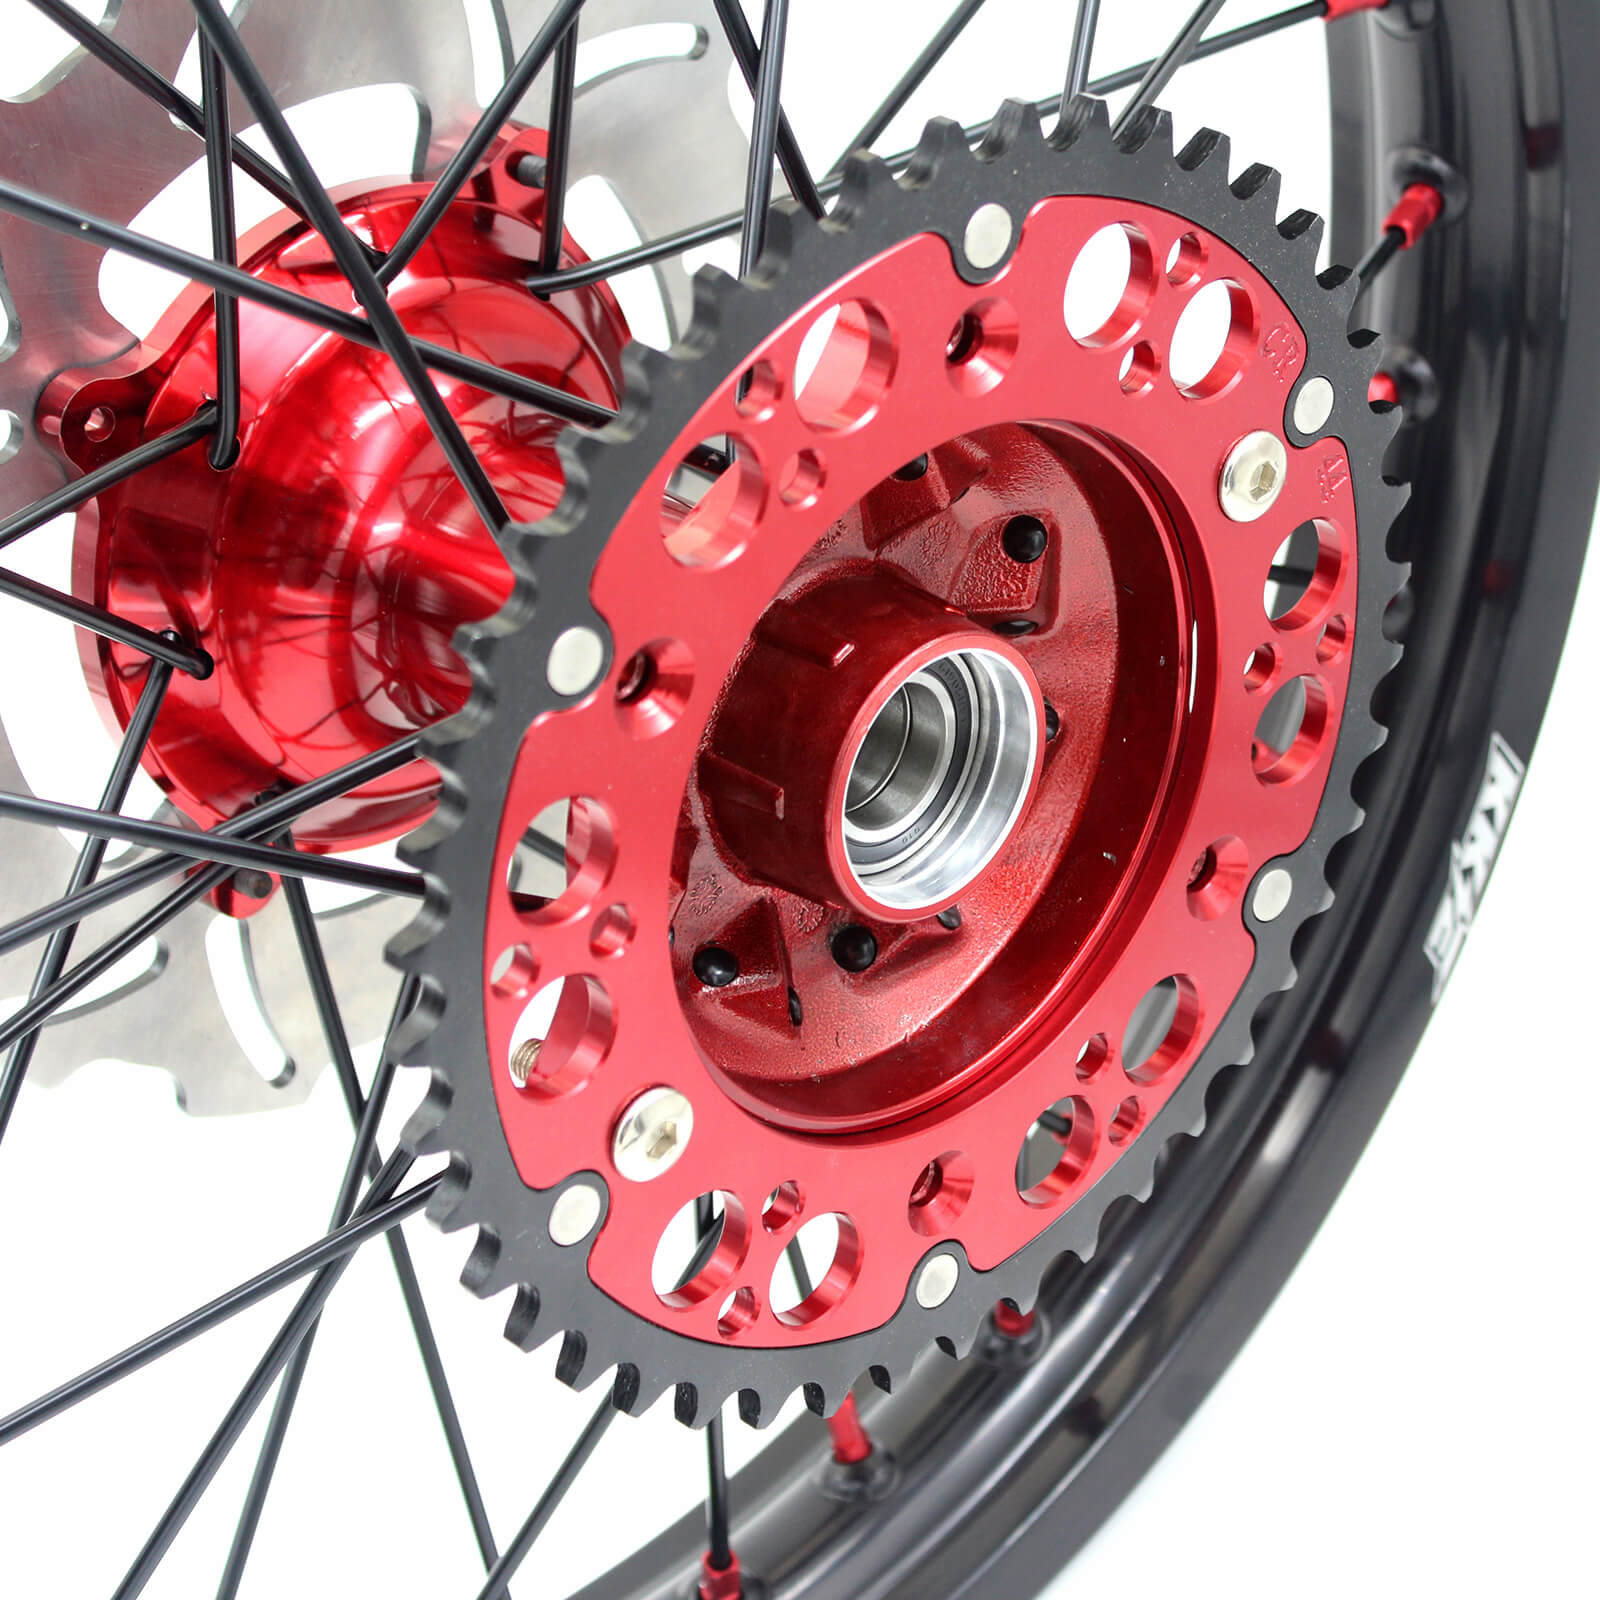 KKE 21/19 CASTING SPOKED WHEELS SET FOR HONDA CR125R CR250R 2002-2013 BLACK SPOKE DISCS - KKE Racing